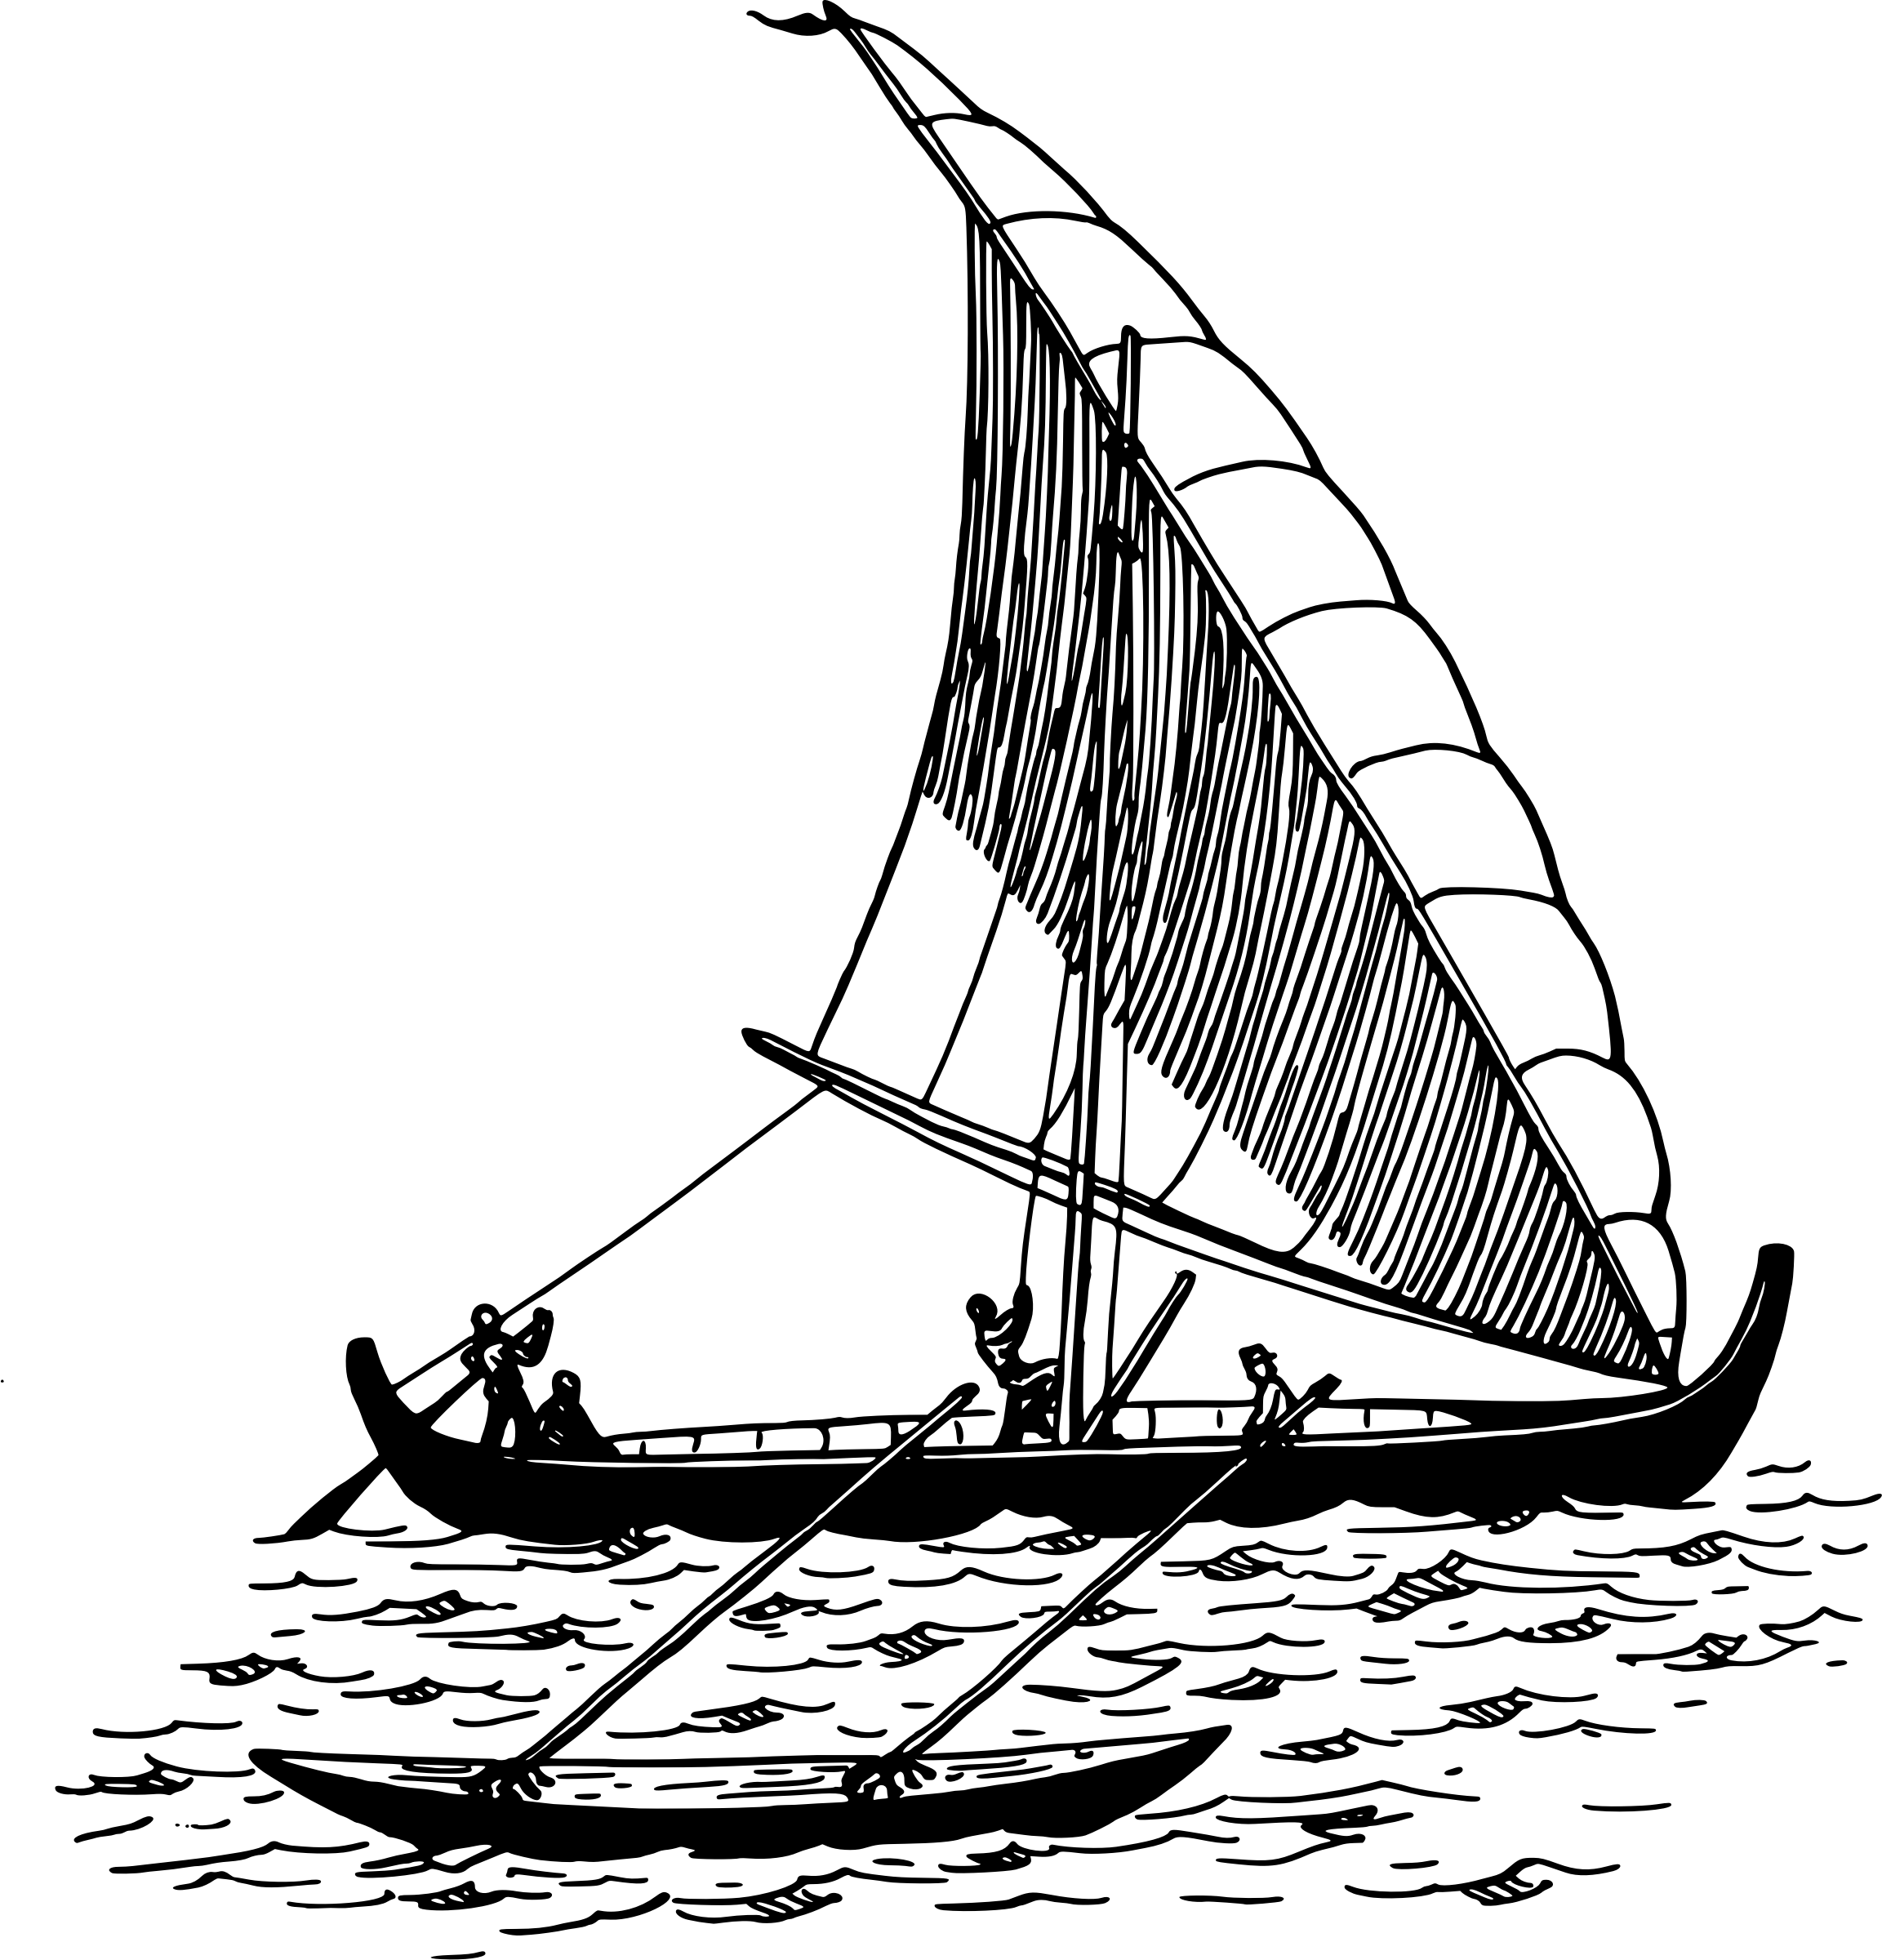 Sailboat With Outrigger Vector Clipart Image